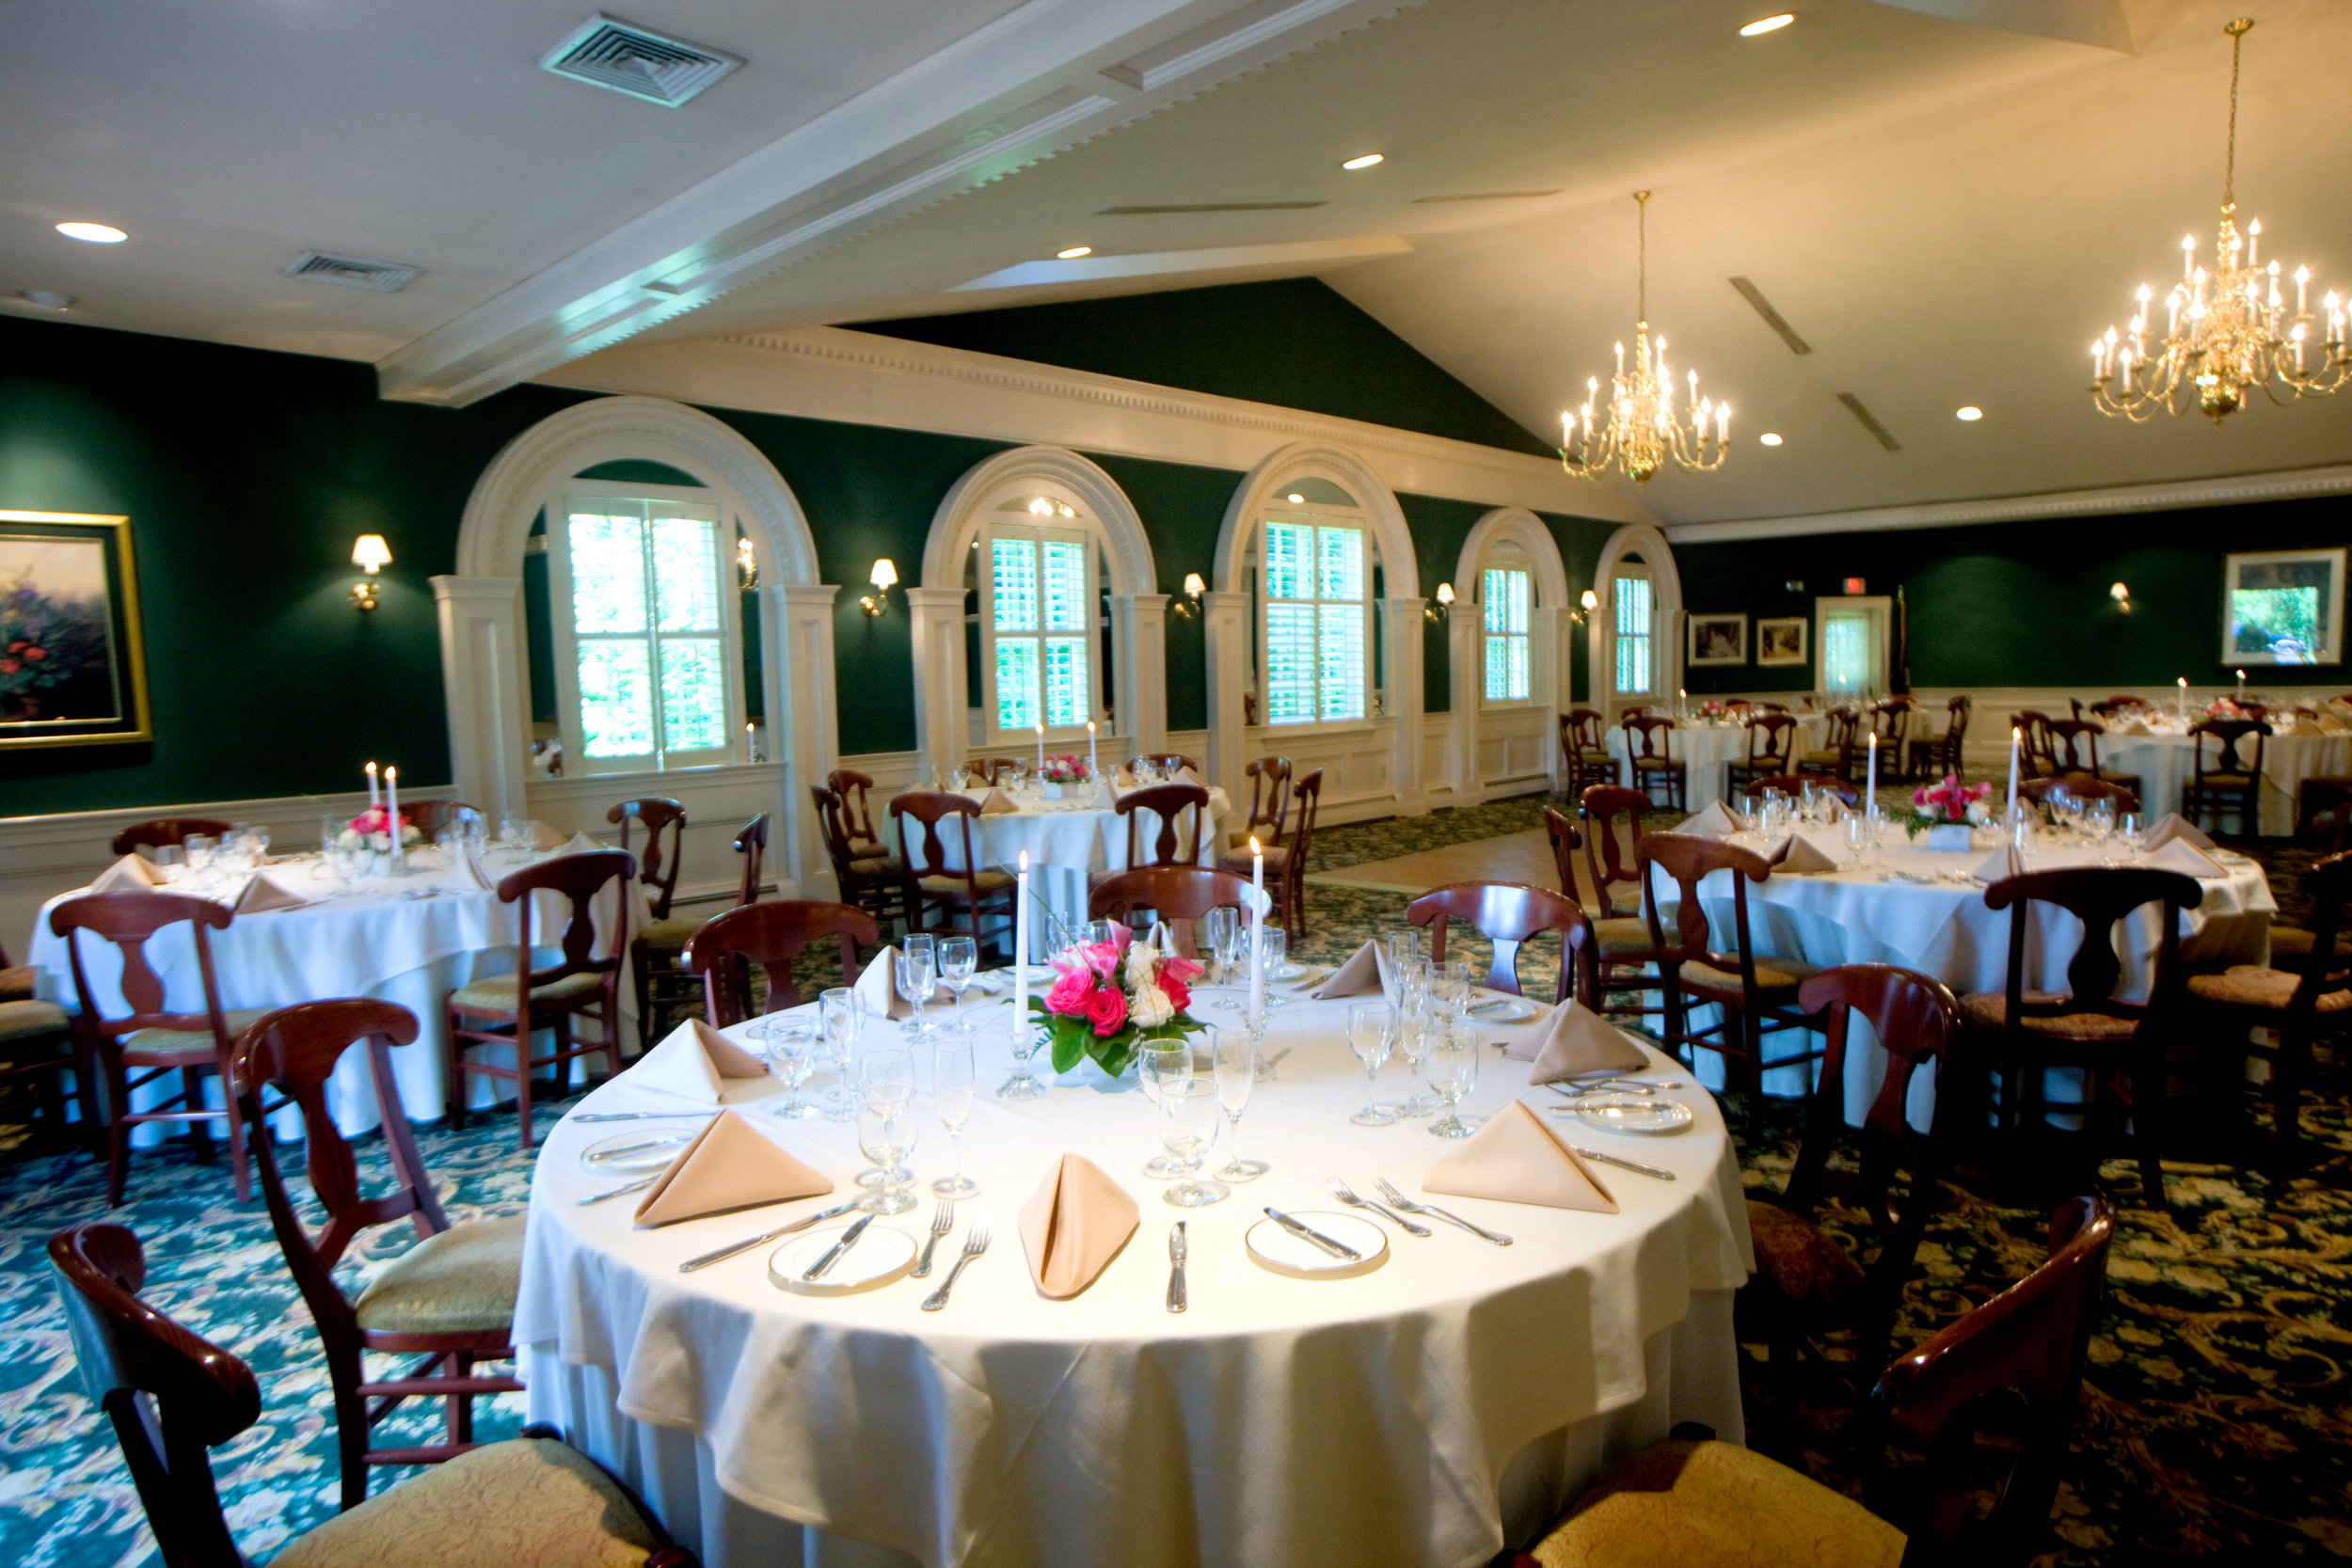 OUR SPACE - Vickers is a restored 1820s farmhouse in the heart of Chester County. In the historic home you will fine 4 private dining rooms that can accommodate from 15-40 guests and our Plantation Ballroom that is perfect for larger groups and cocktail parties of 50-150 depending on the style of your event. Our Bar are is a wonderful option for a small happy hour or casual gathering of friends and colleagues.